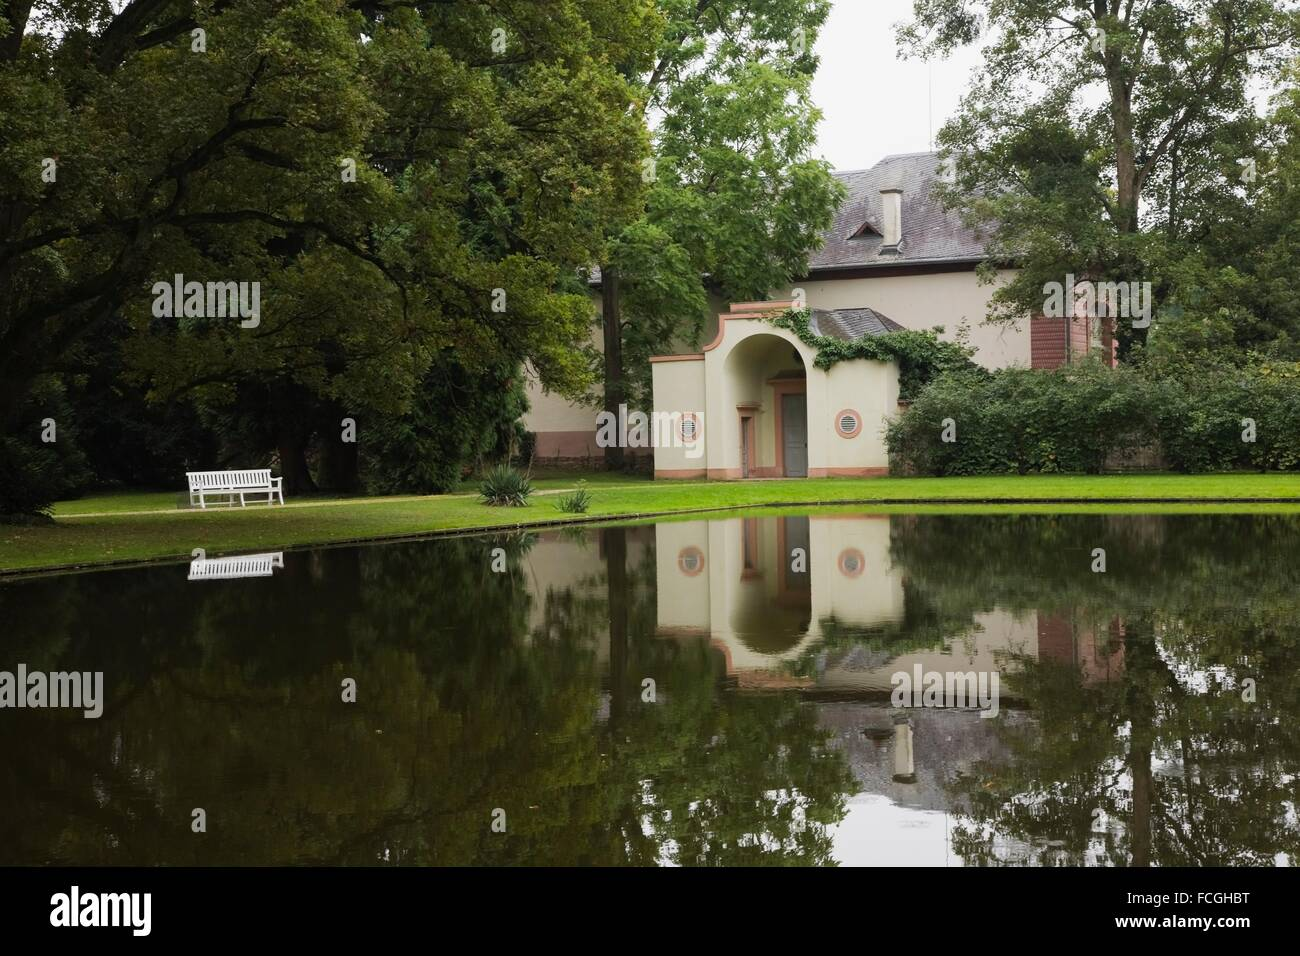 Baroque architectural style building reflected in the water canal in the Schwetzingen palace garden in late summer, - Stock Image